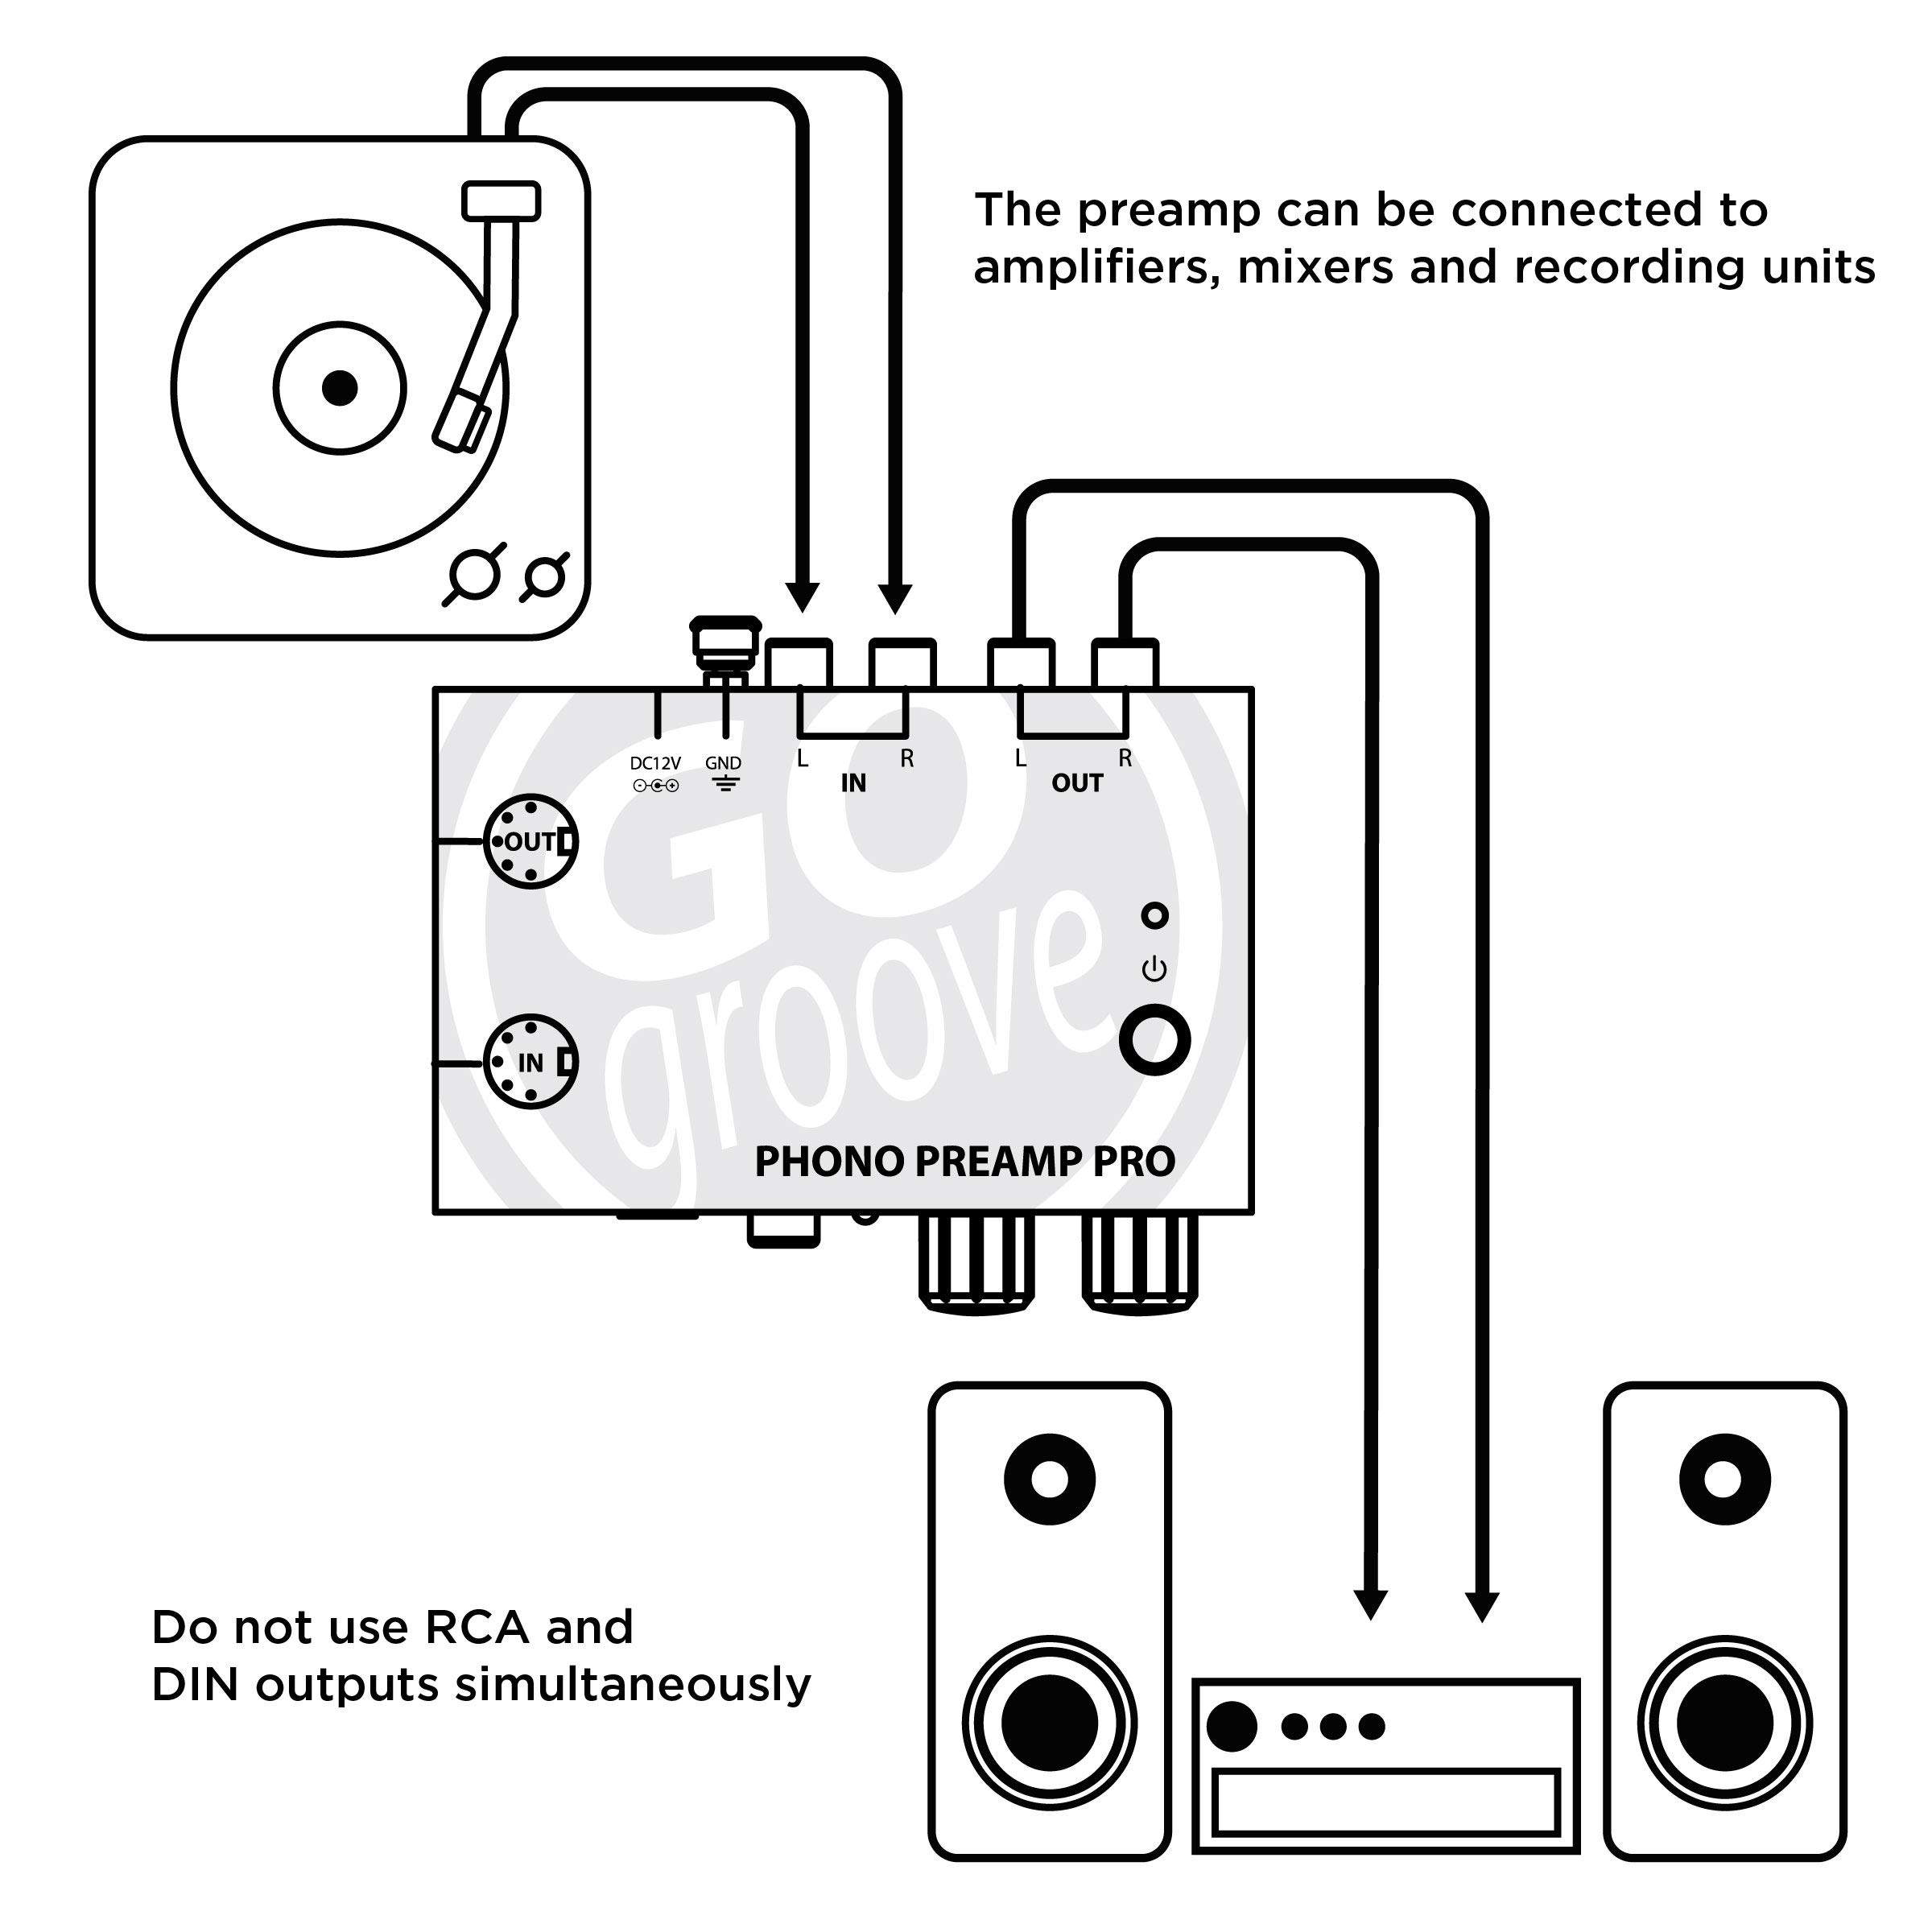 GOgroove Phono Preamp Pro Preamplifier with RCA Input/Output, DIN Connection, RIAA Equalization, 12V AC Adapter - Compatible with Vinyl Record Players, Turntables, Stereos, DJ Mixers by GOgroove (Image #7)